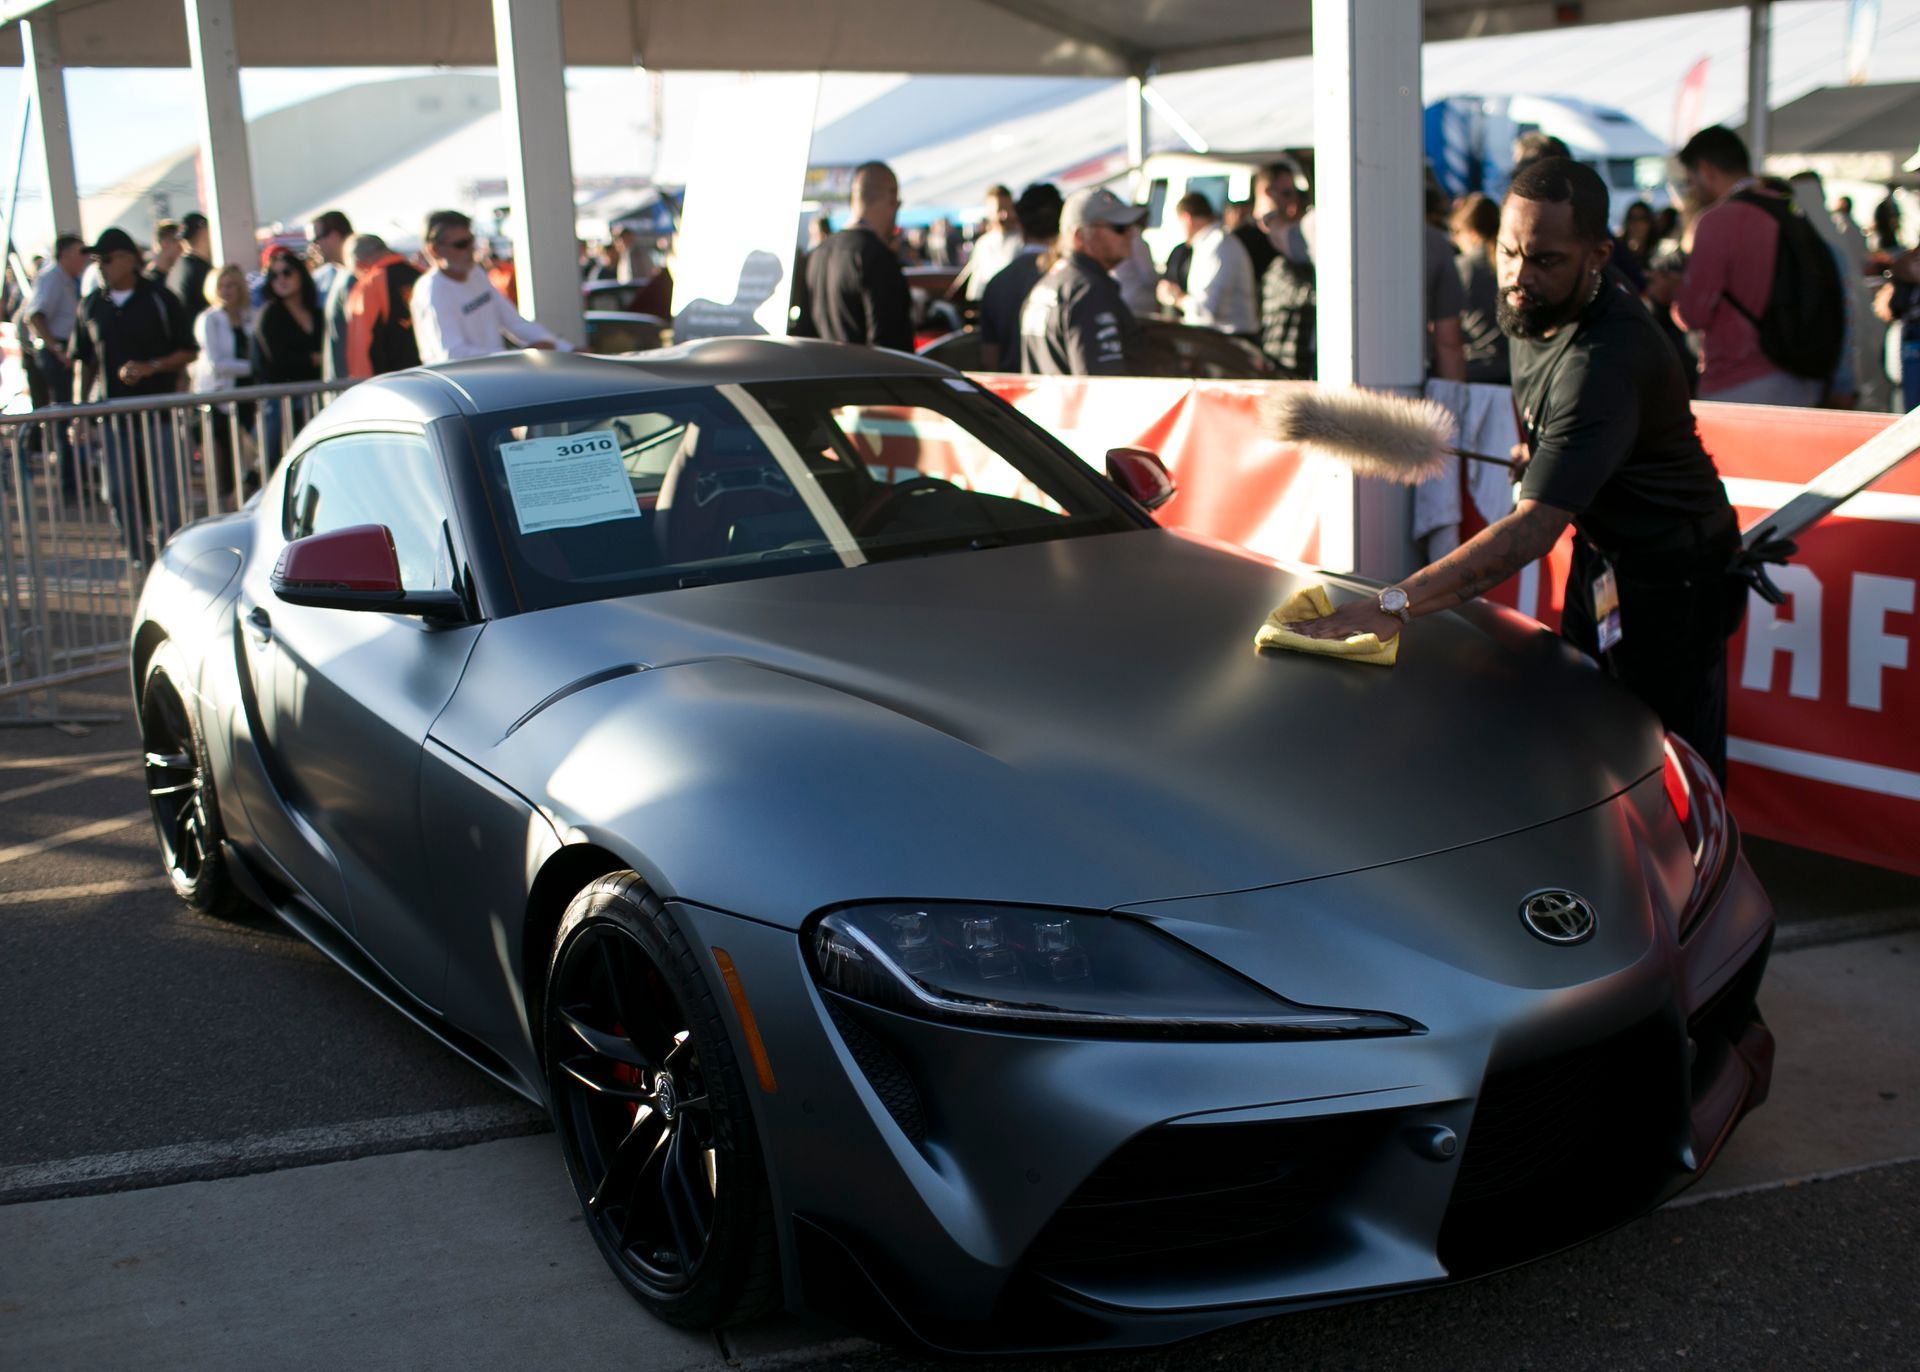 a 2020 toyota supra-first production vin 20201 sits